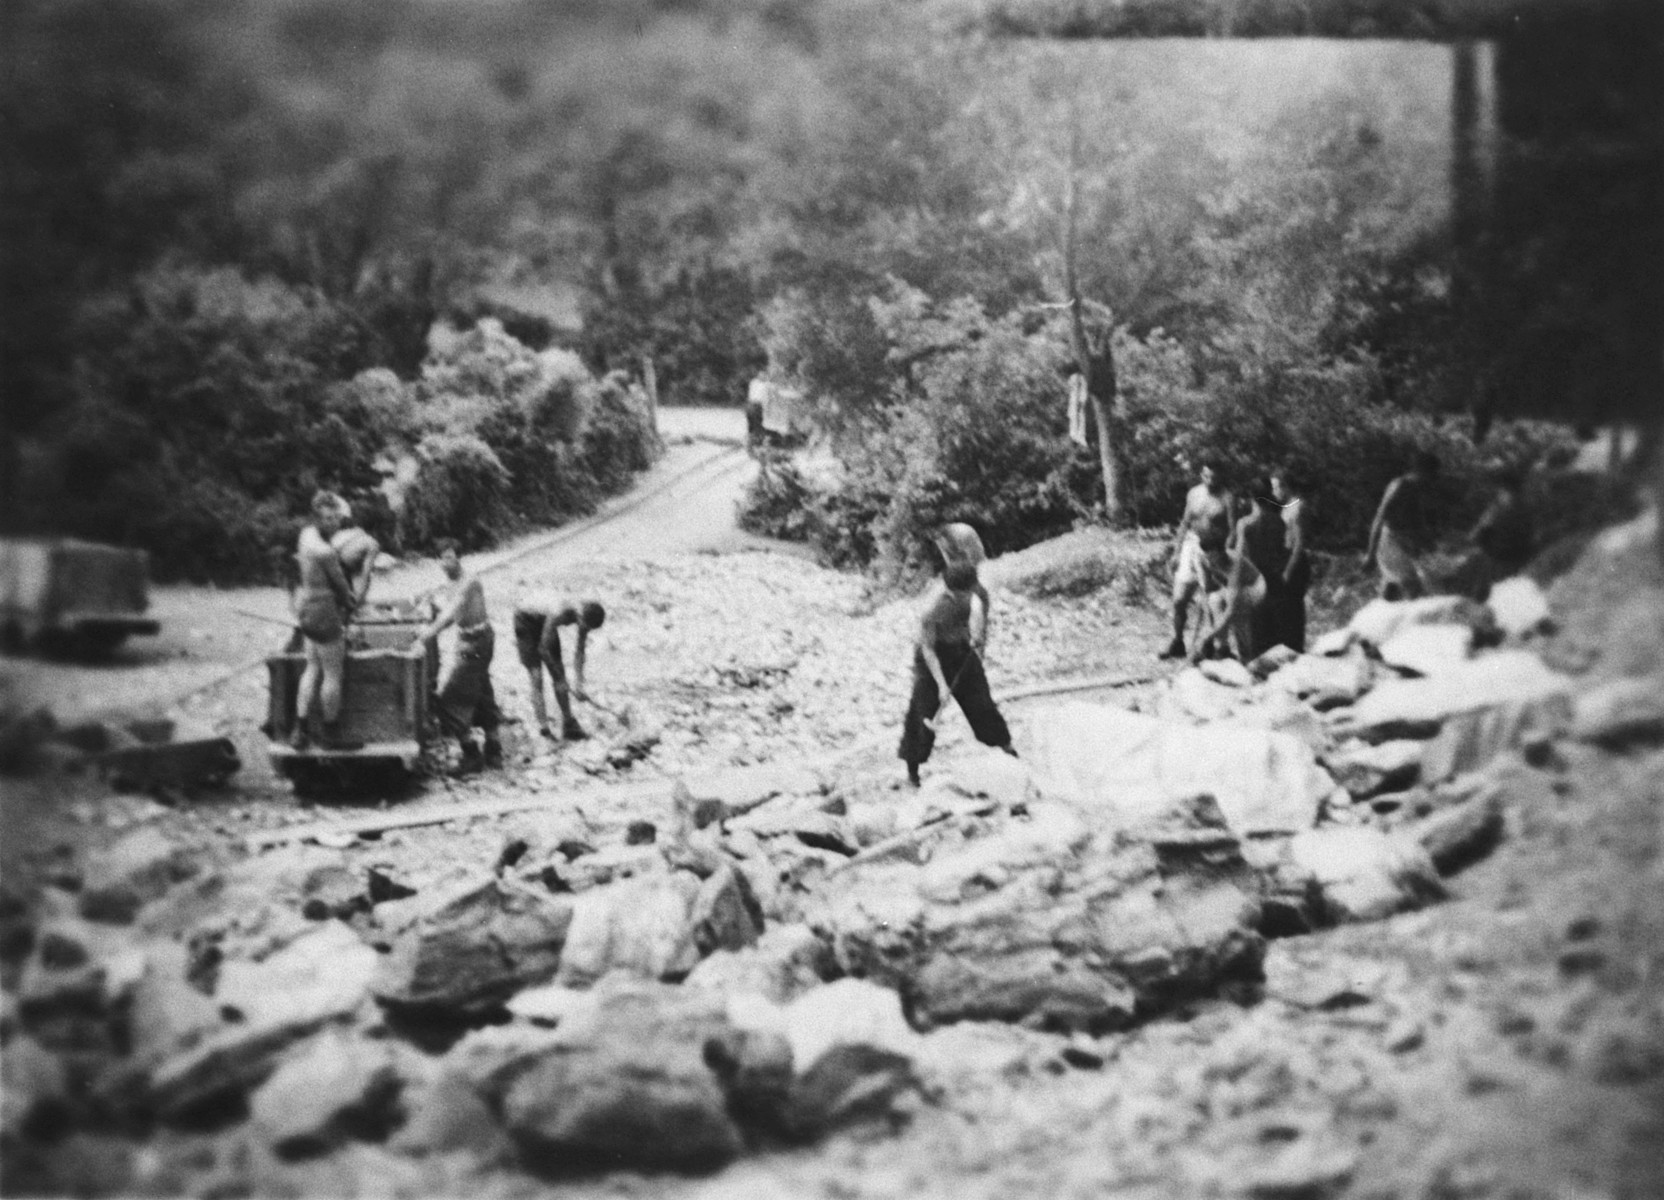 Members of a Hungarian forced labor battalion dig in a stone quarry.